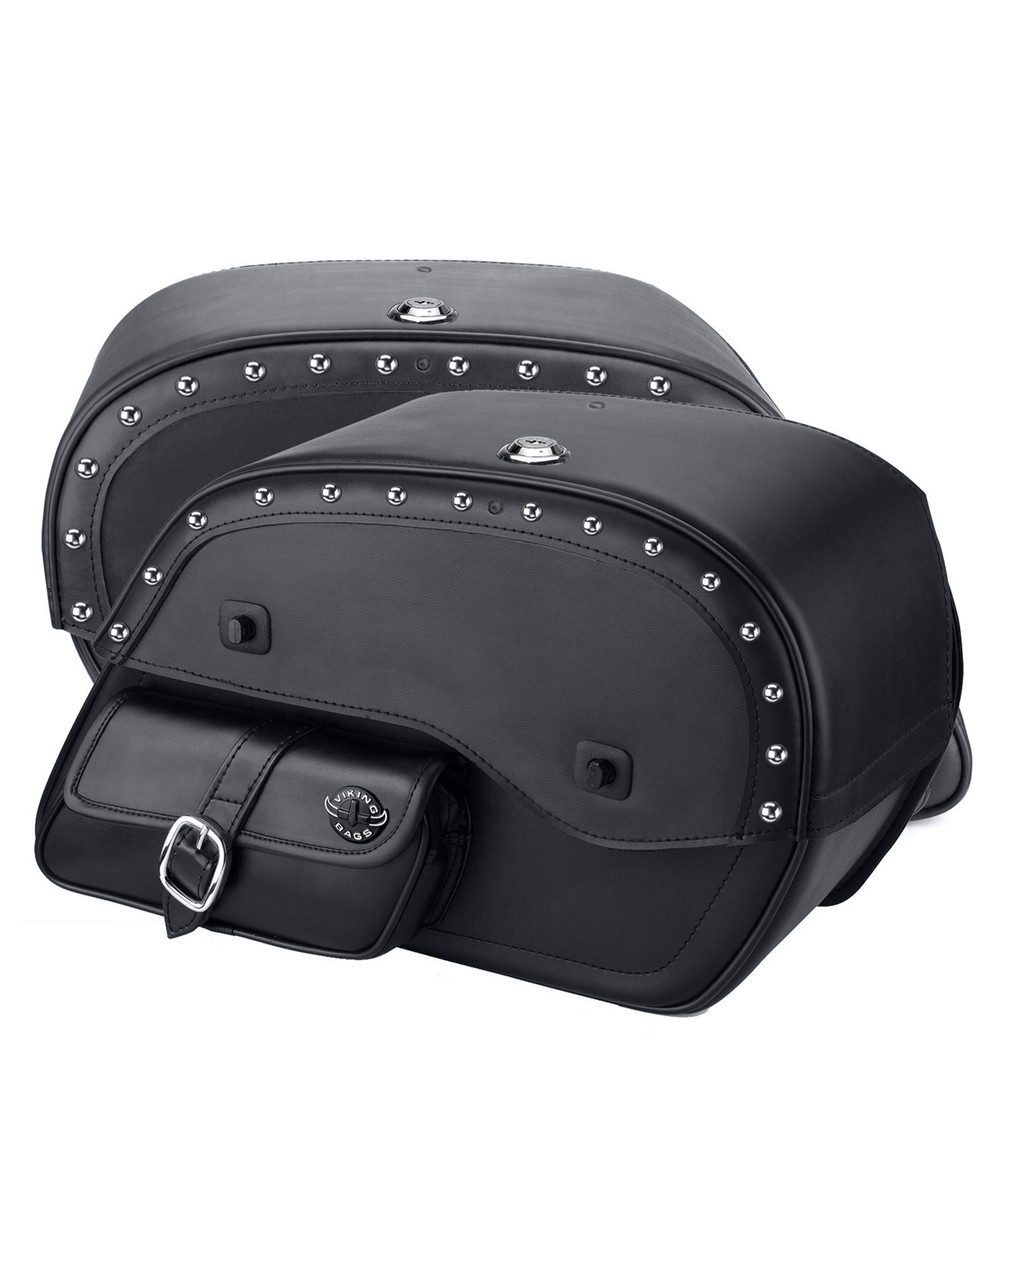 Honda 1500 Valkyrie Interstate Side Pocket Studded Motorcycle Saddlebags Both Bags View